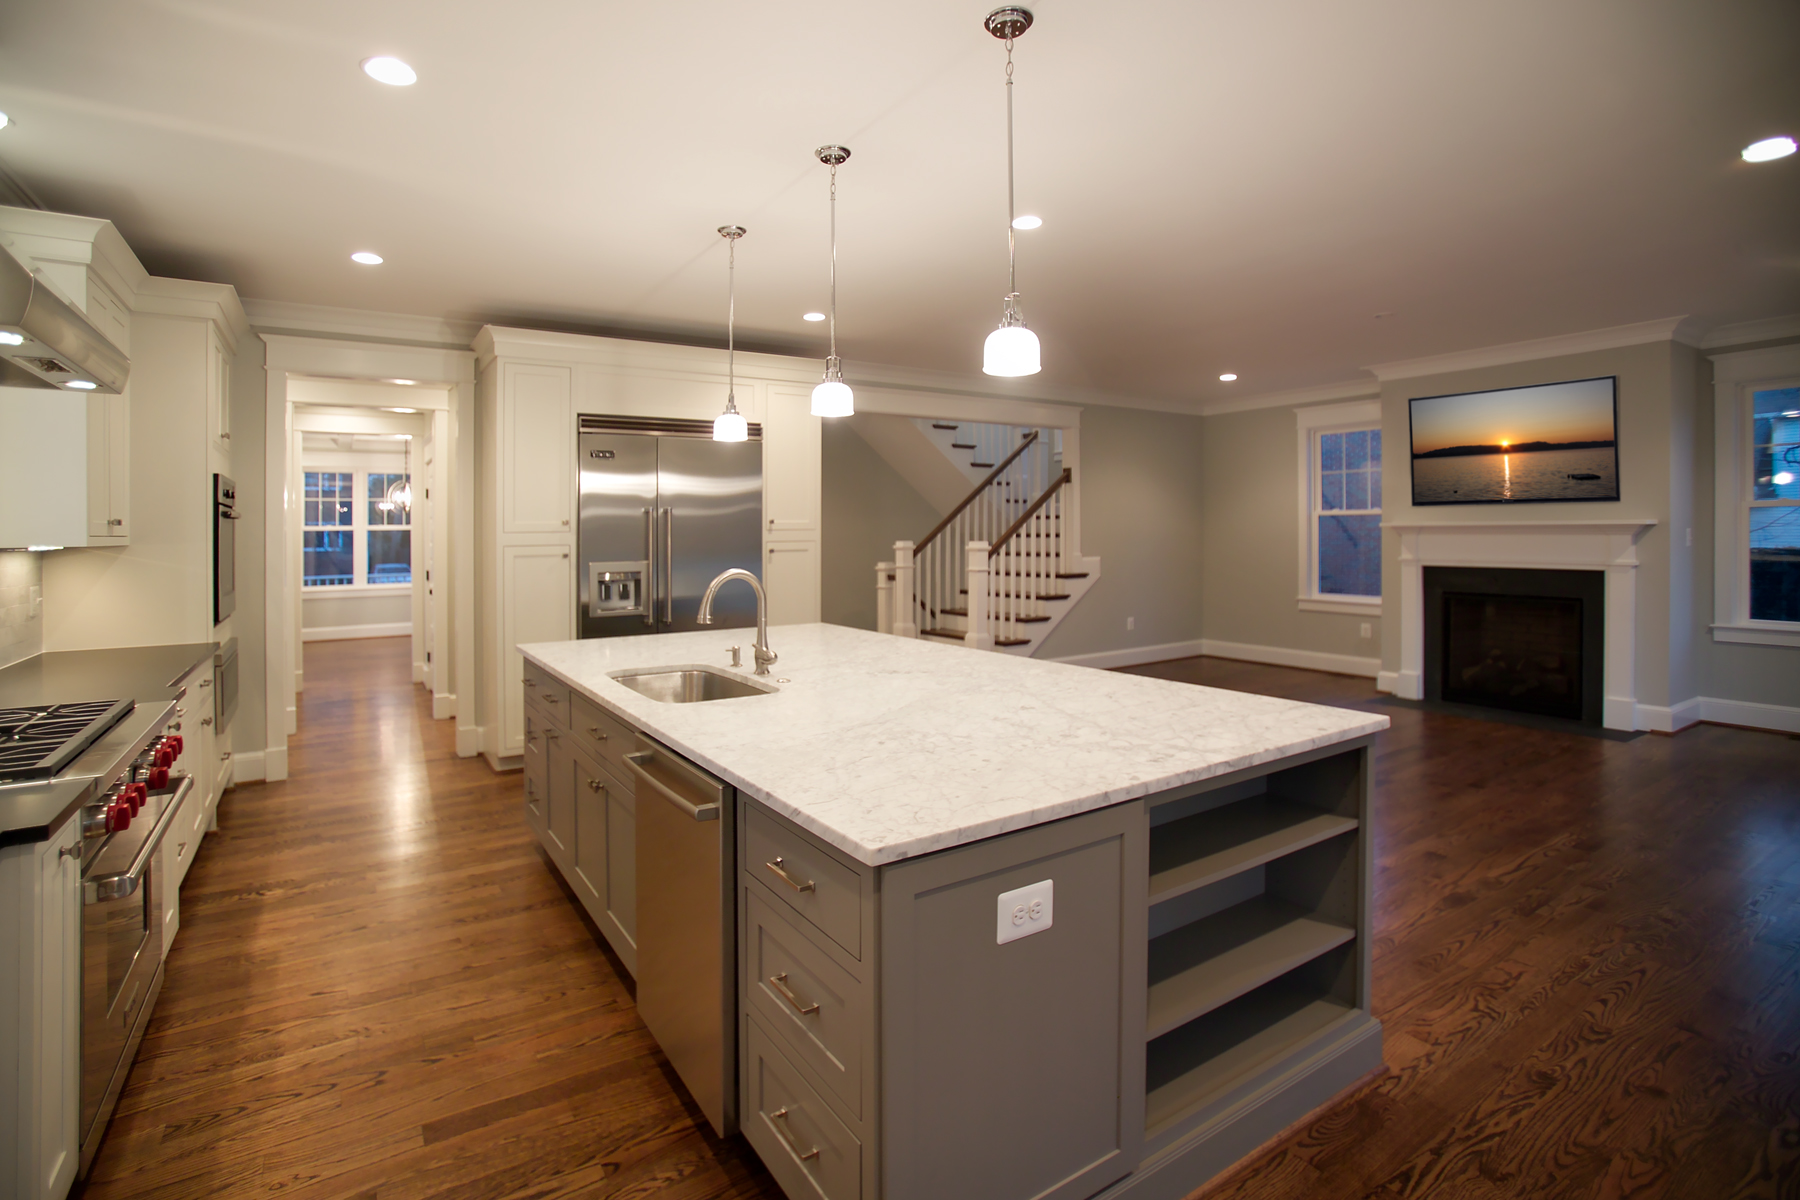 Kitchen 4 - Overall View to Family Room.jpg